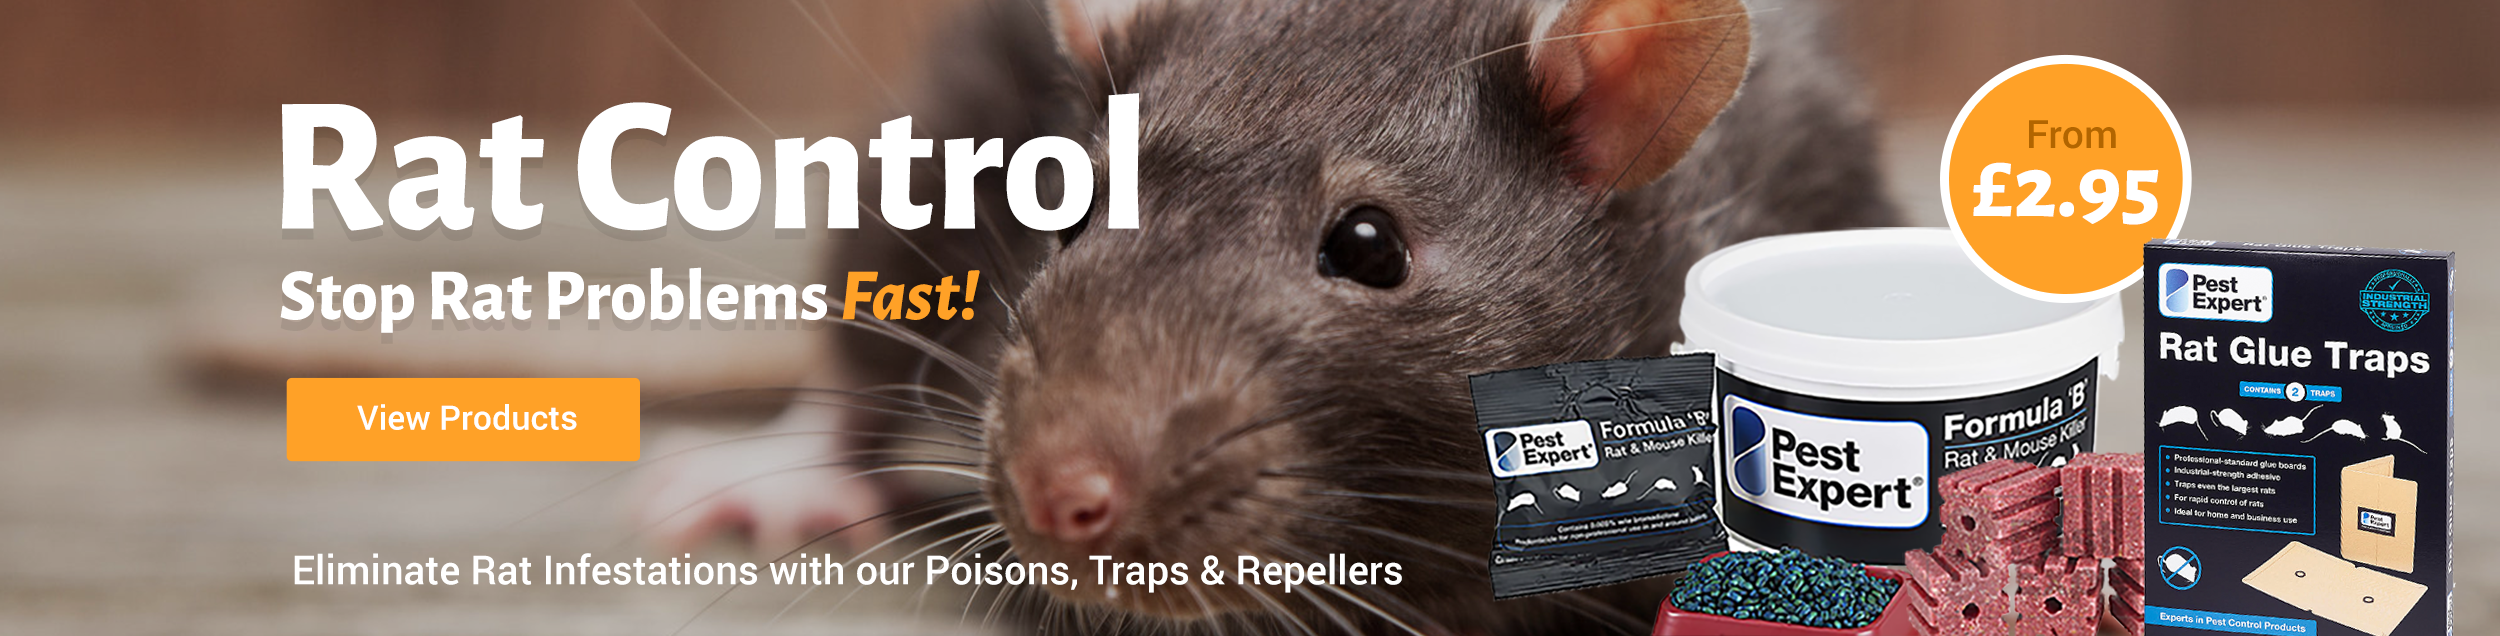 Pest Control Supplies co uk How to Get Rid of Cluster Flies